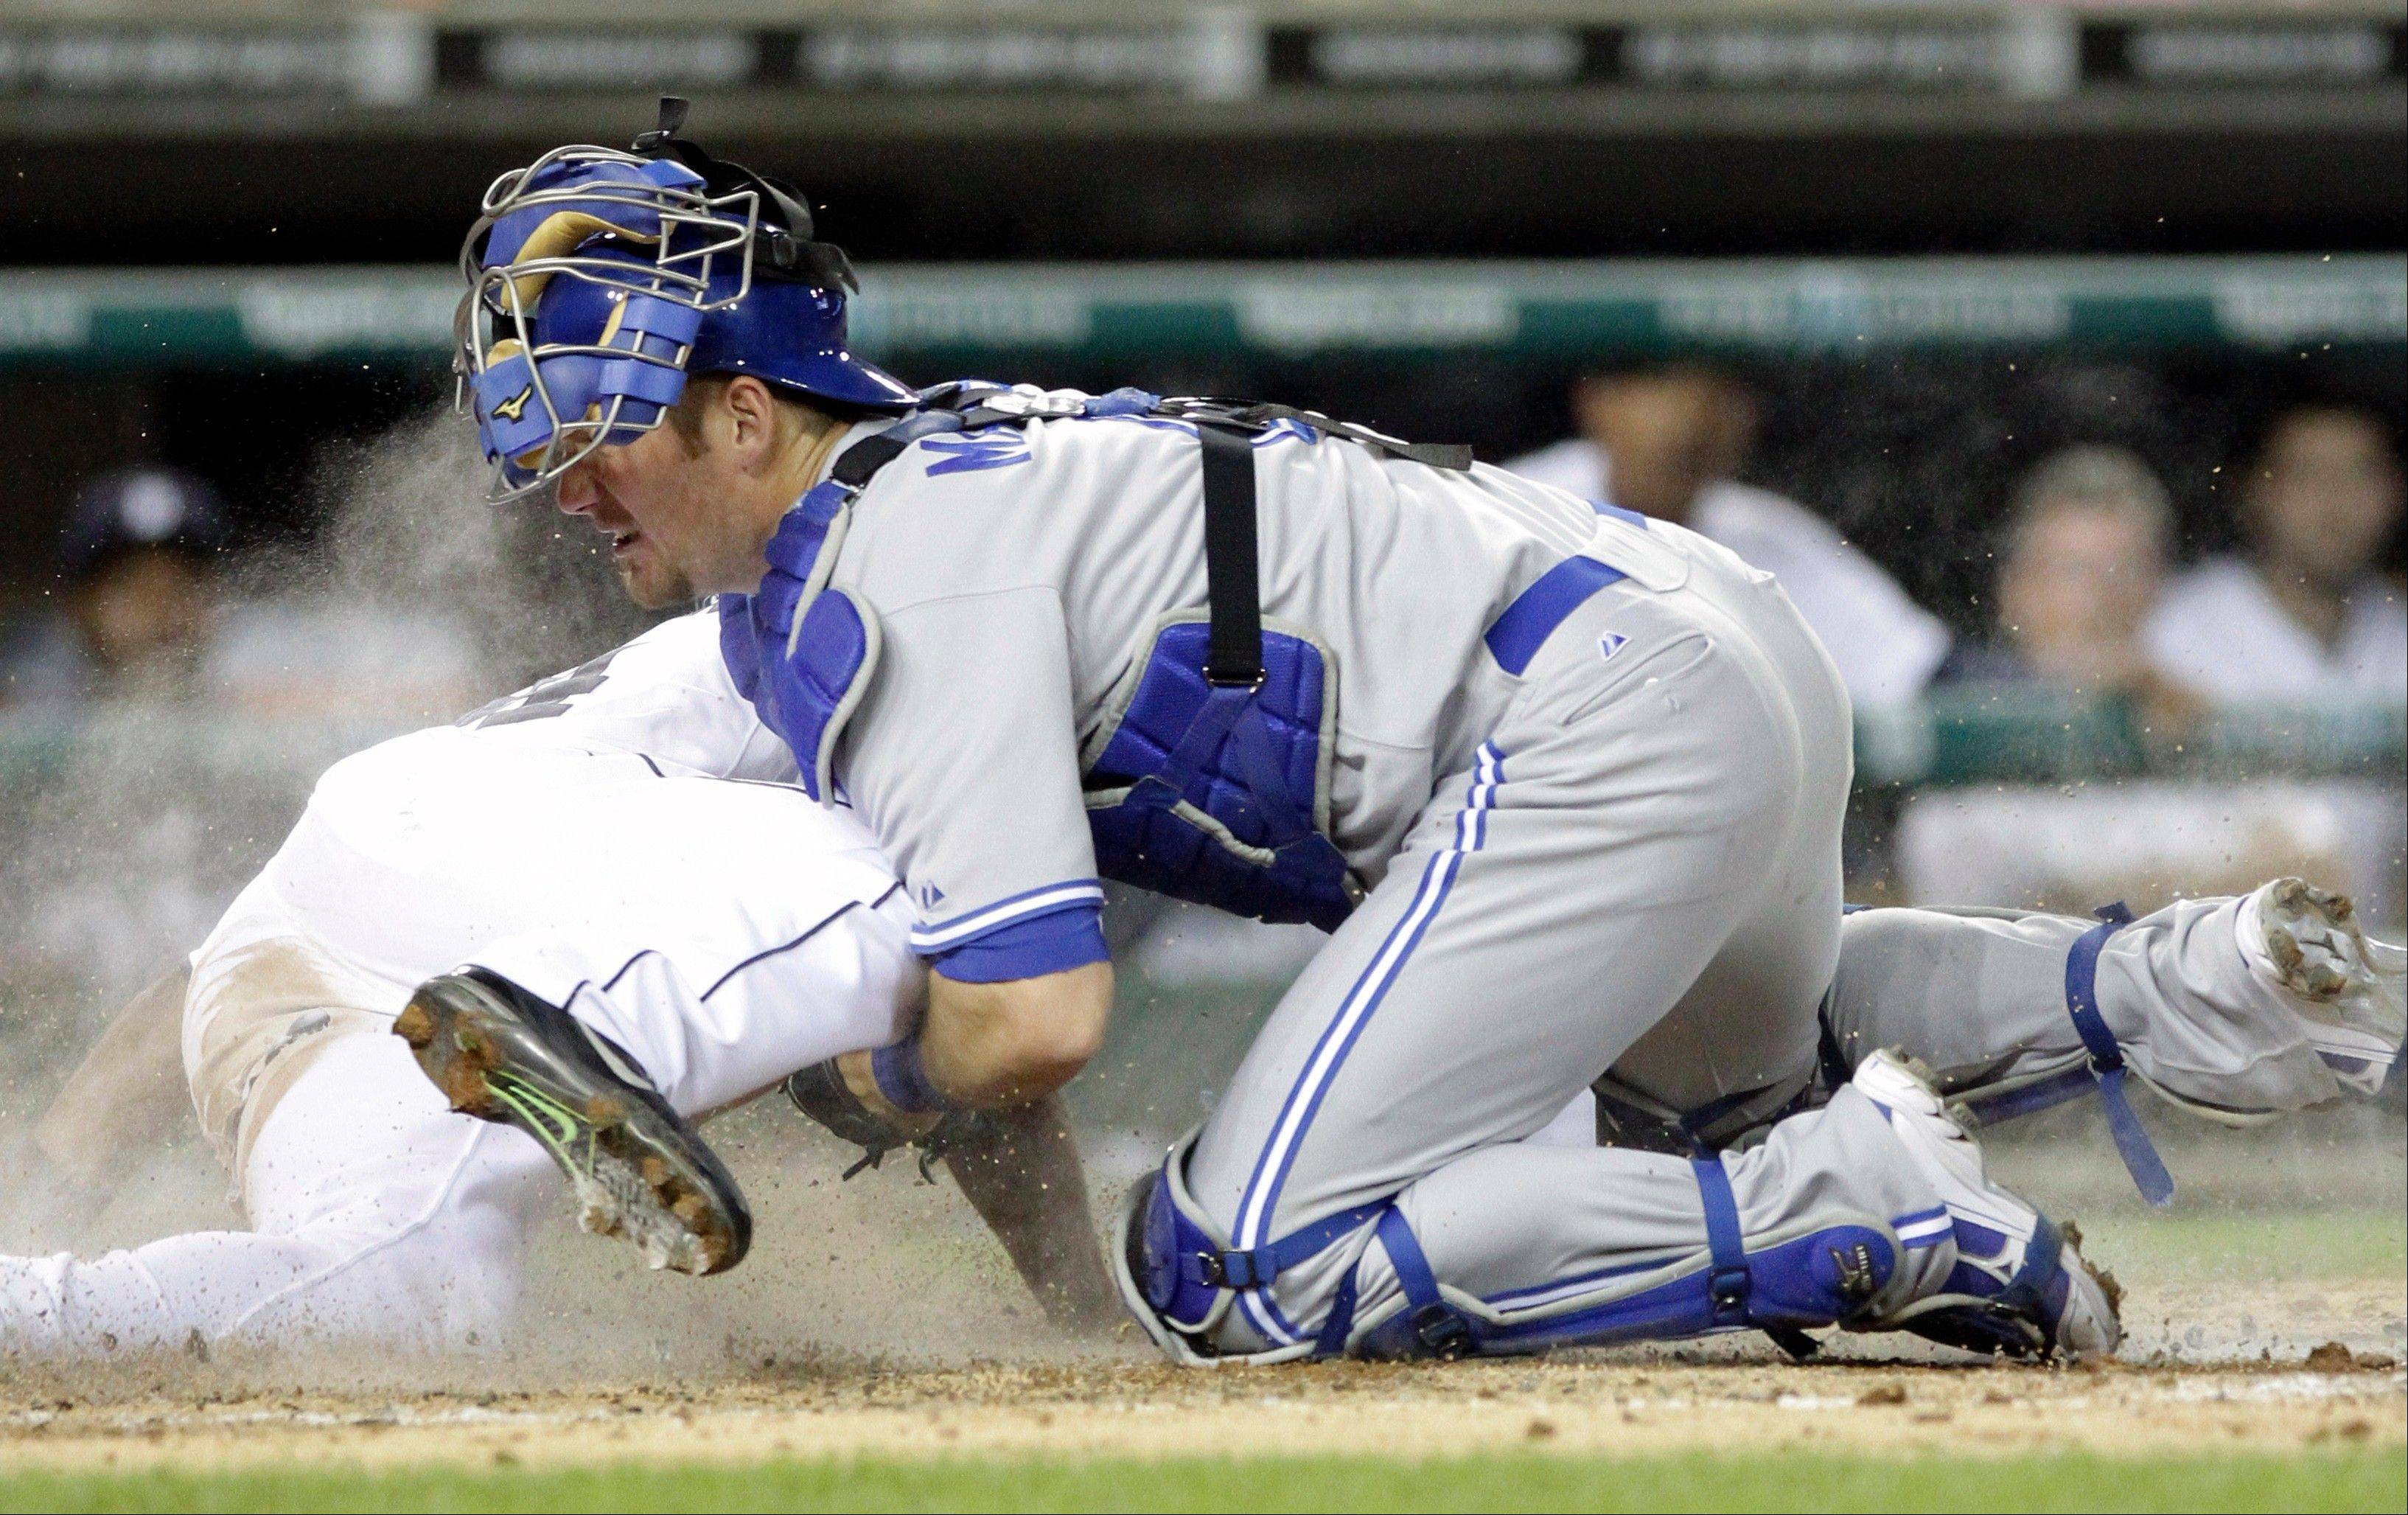 The Tigers' Austin Jackson, left, scores on a single by Prince Fielder as Toronto Blue Jays catcher Jeff Mathis loses the ball in the sixth inning Wednesday in Detroit.